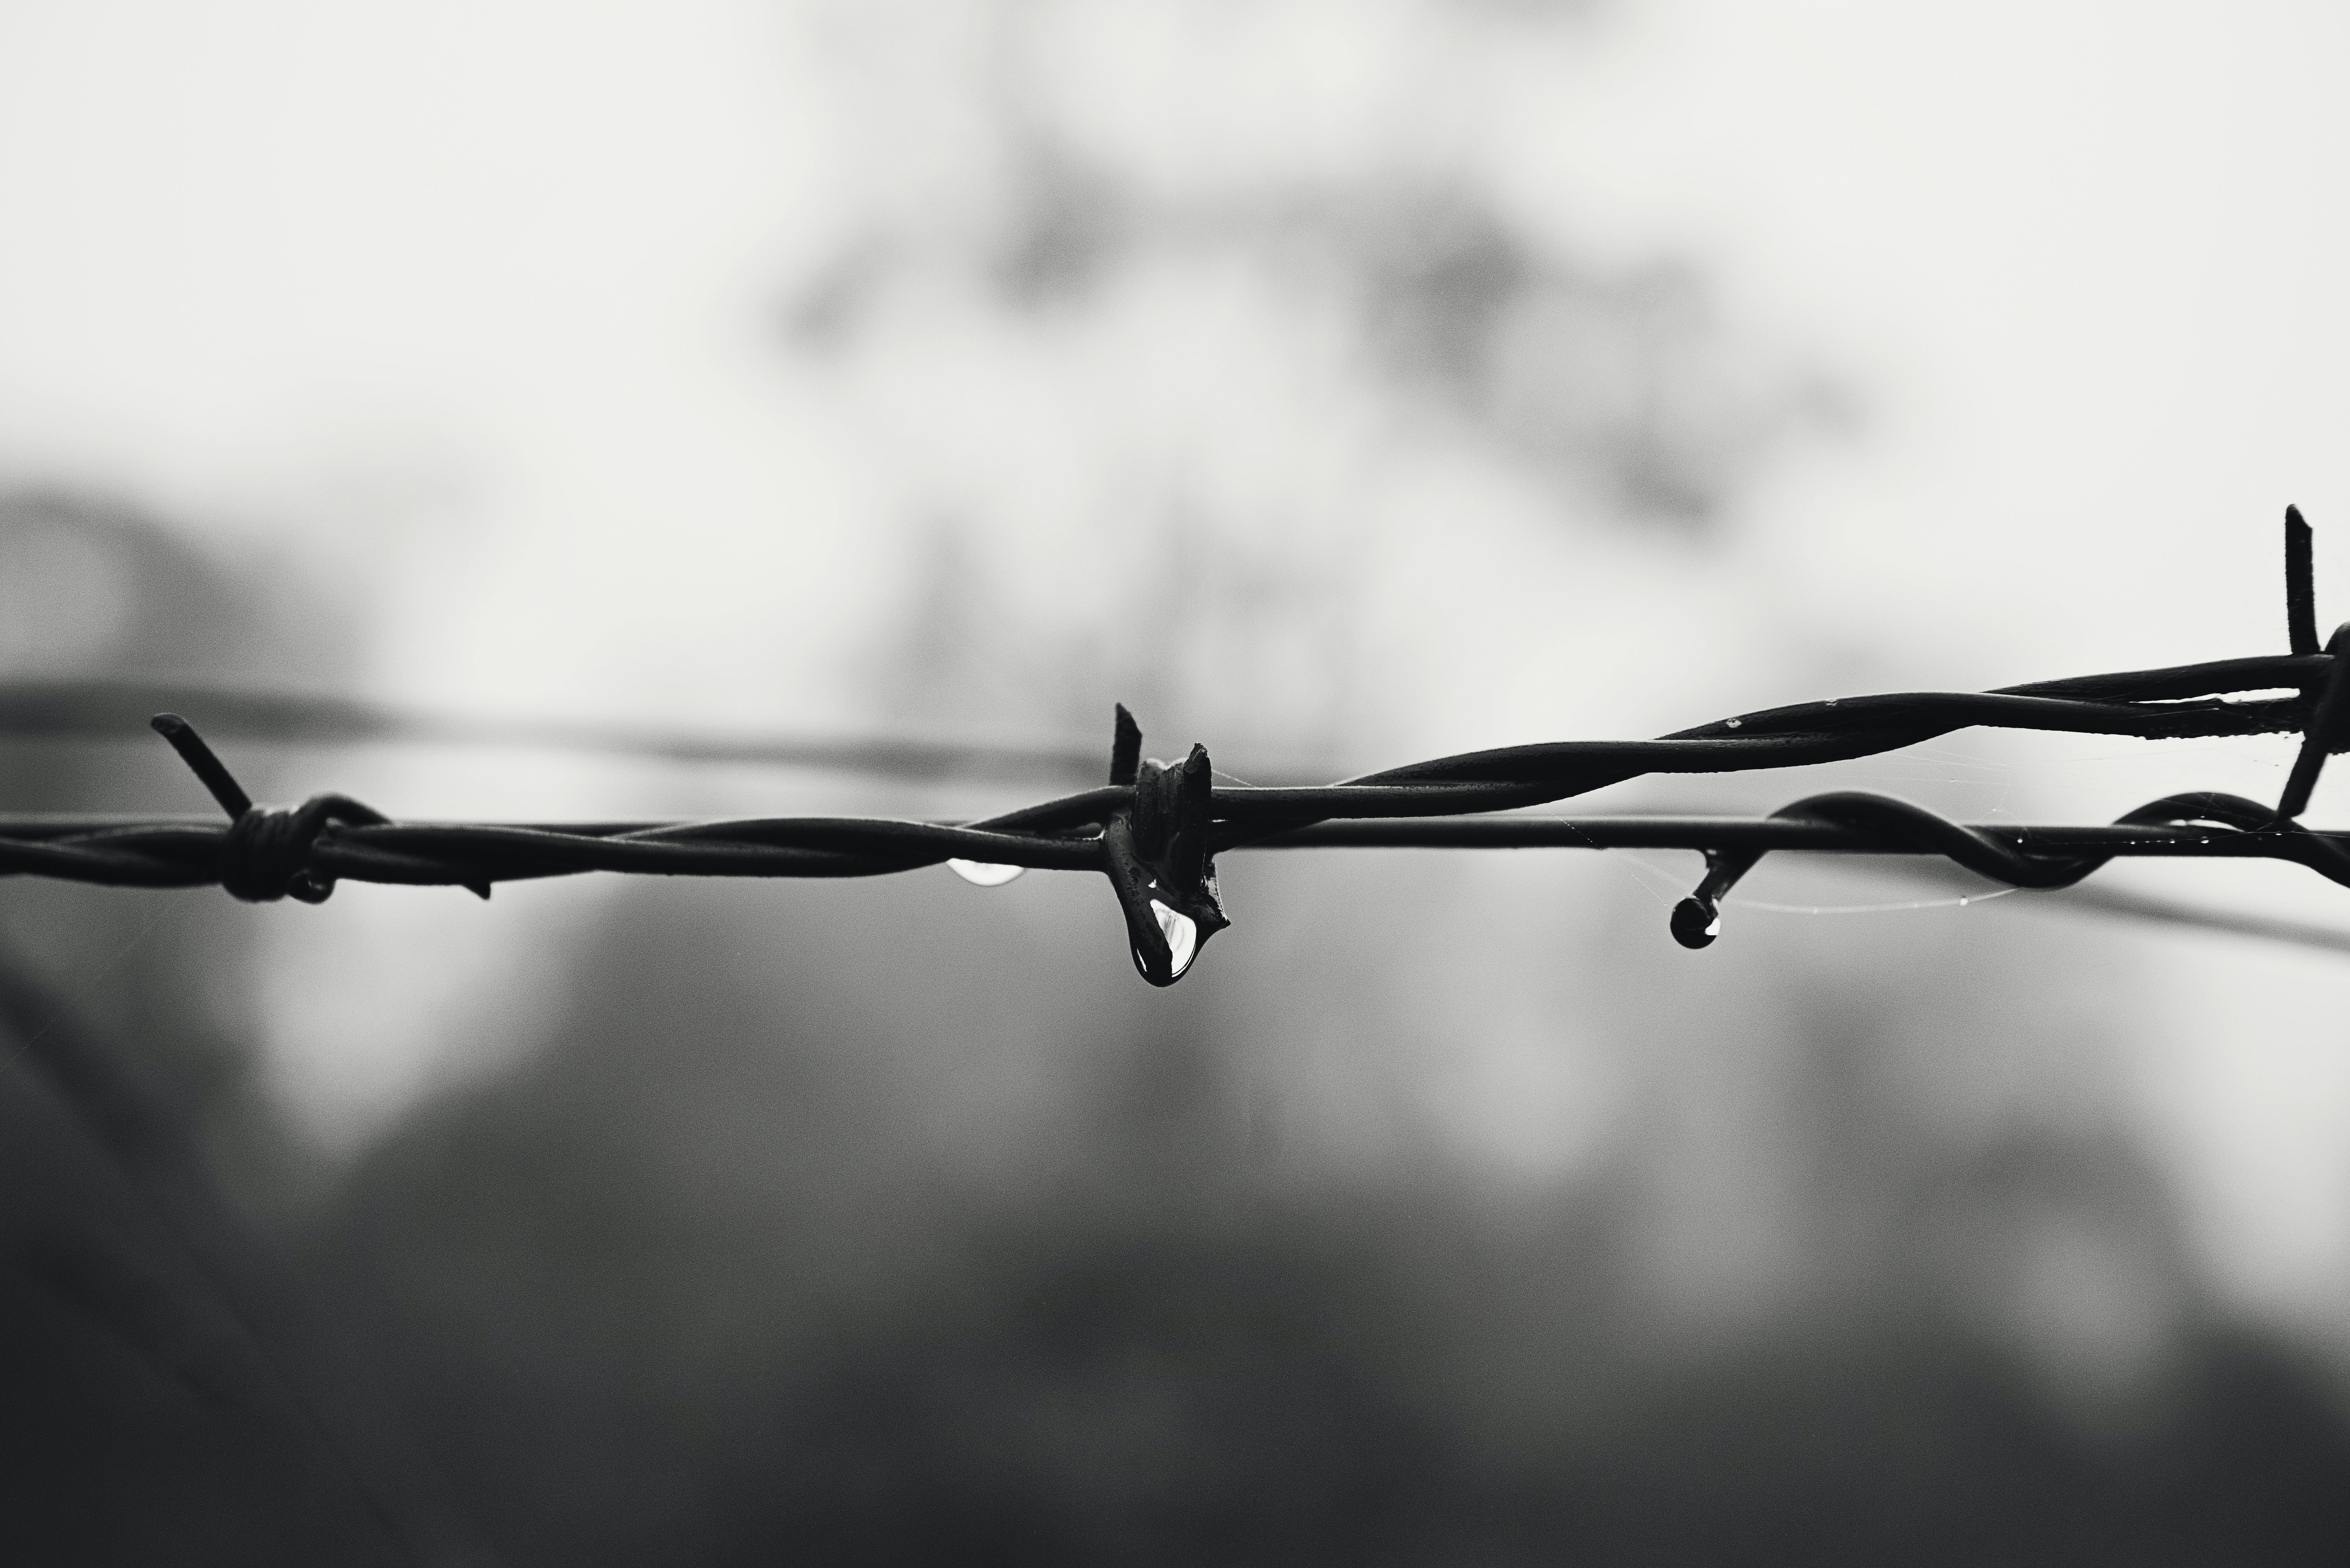 barbed wire, black-and-white, blur